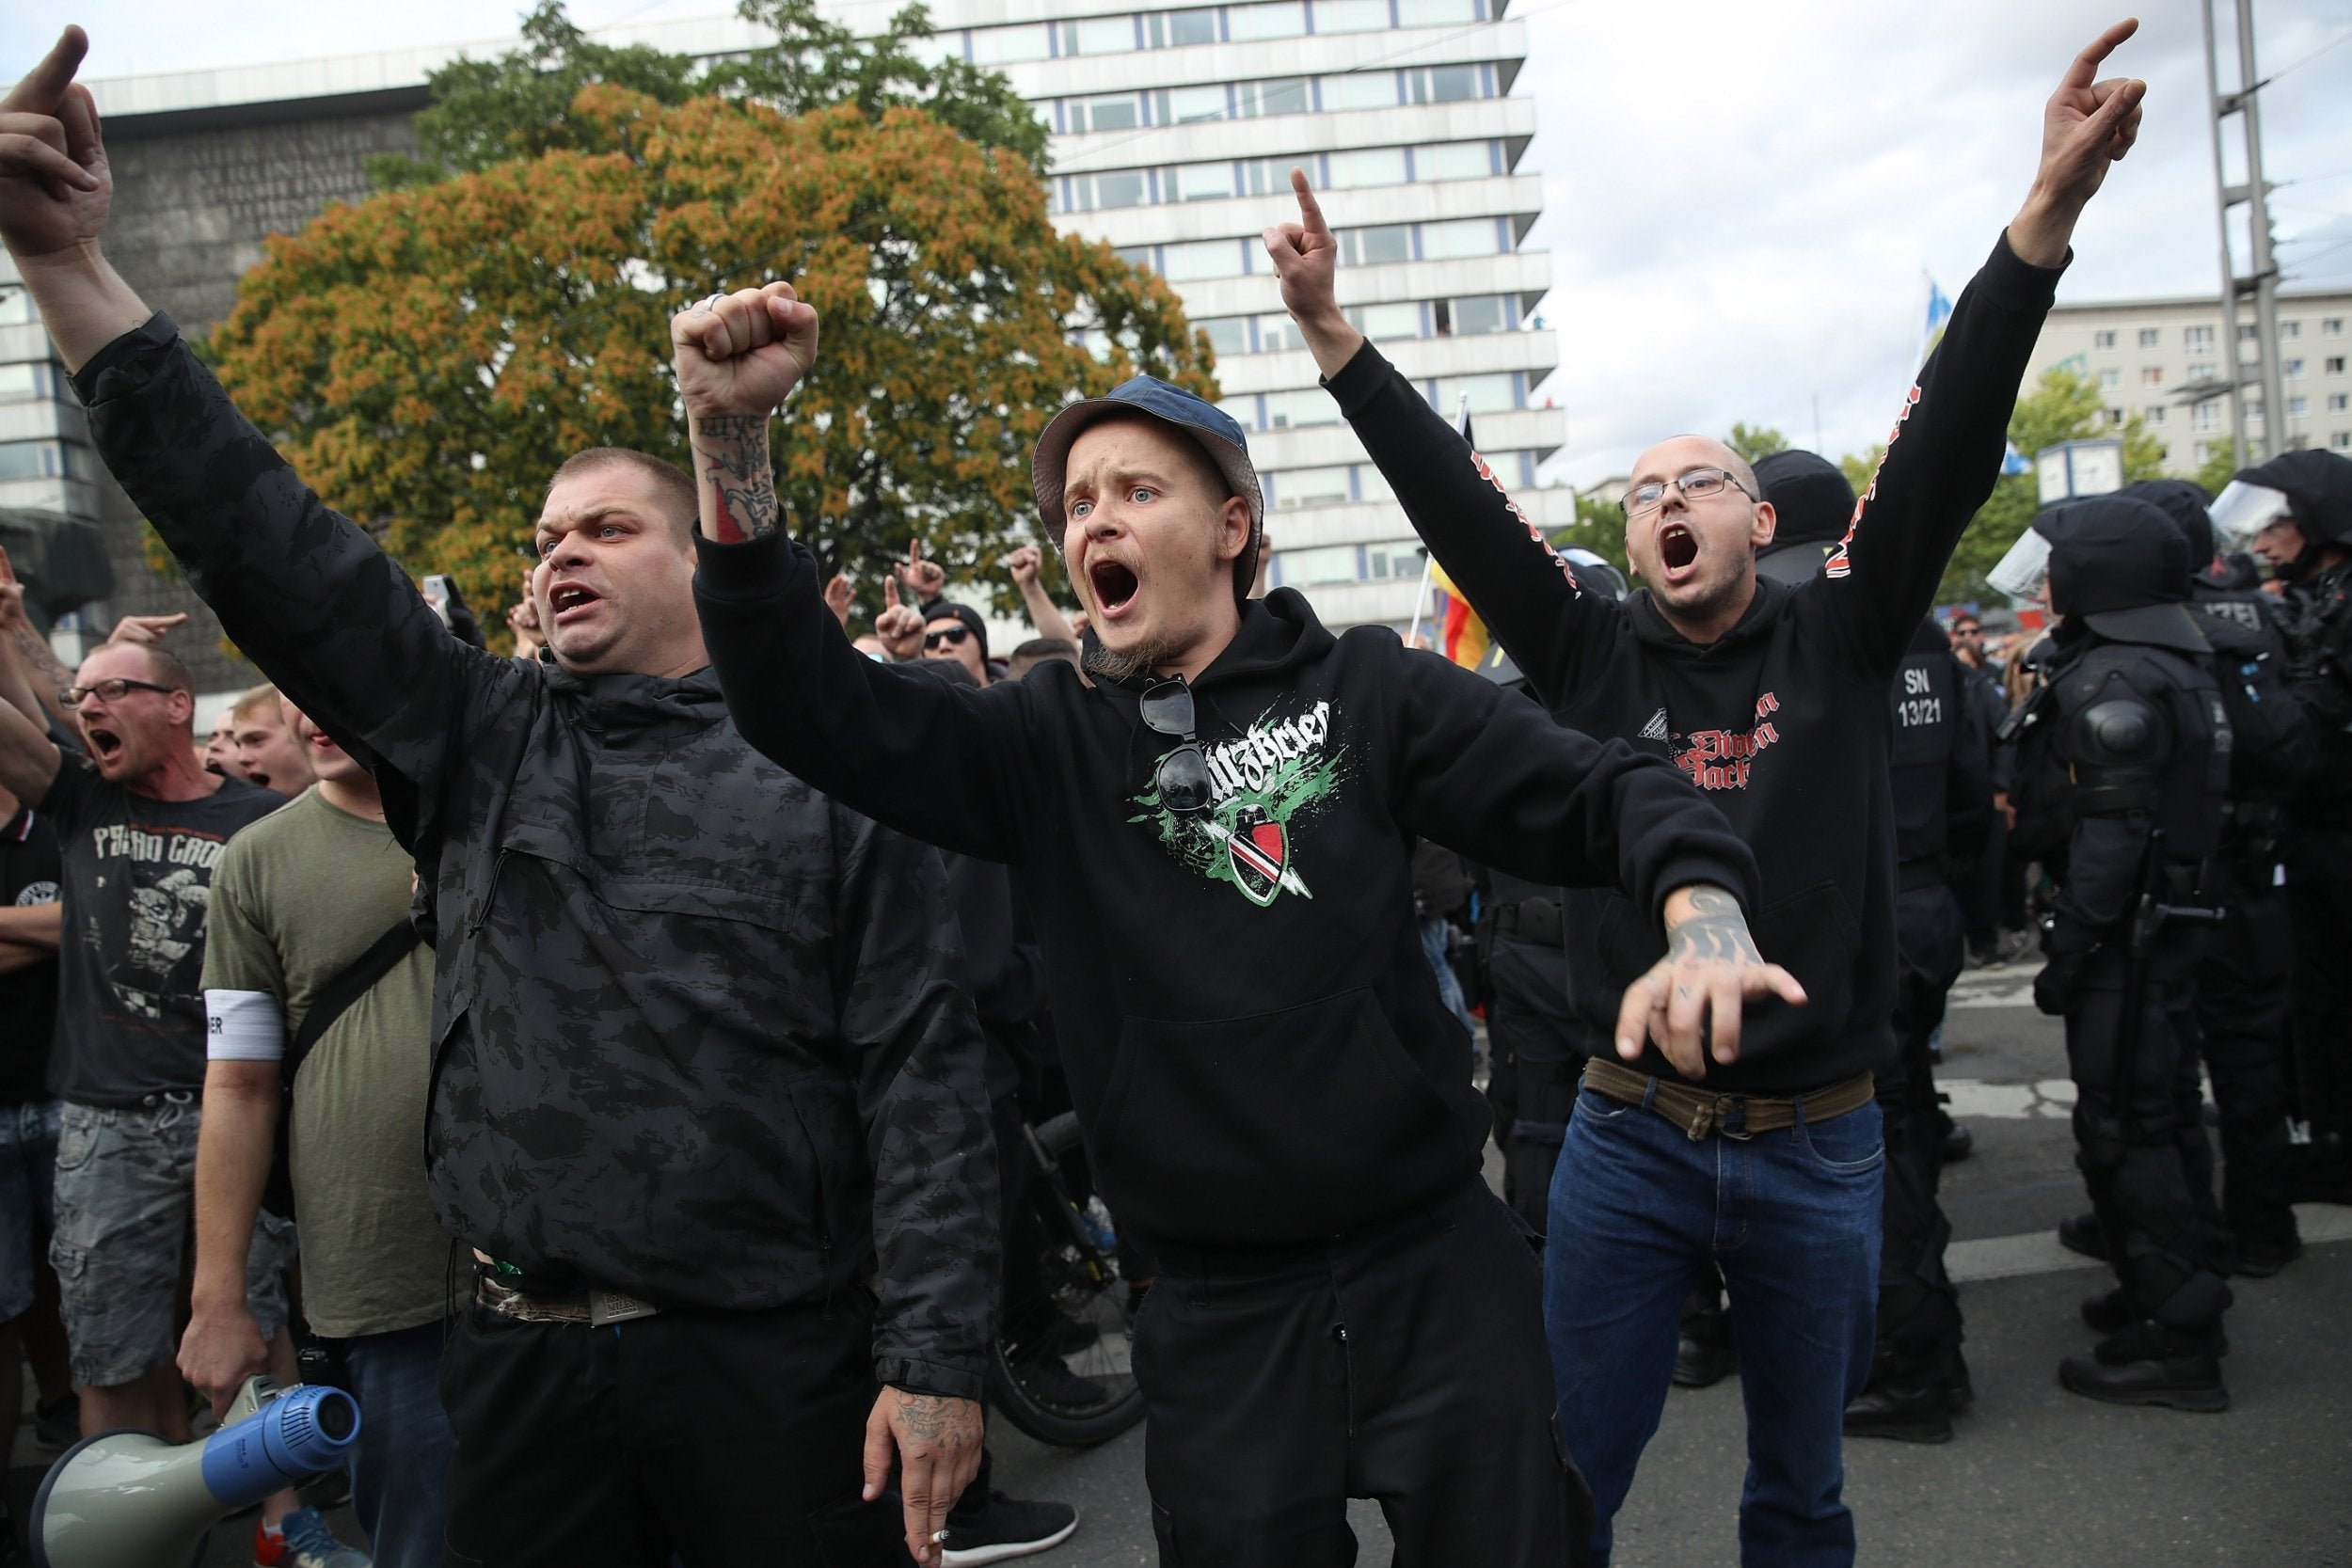 German police shut down far-right music concert after Nazi chants